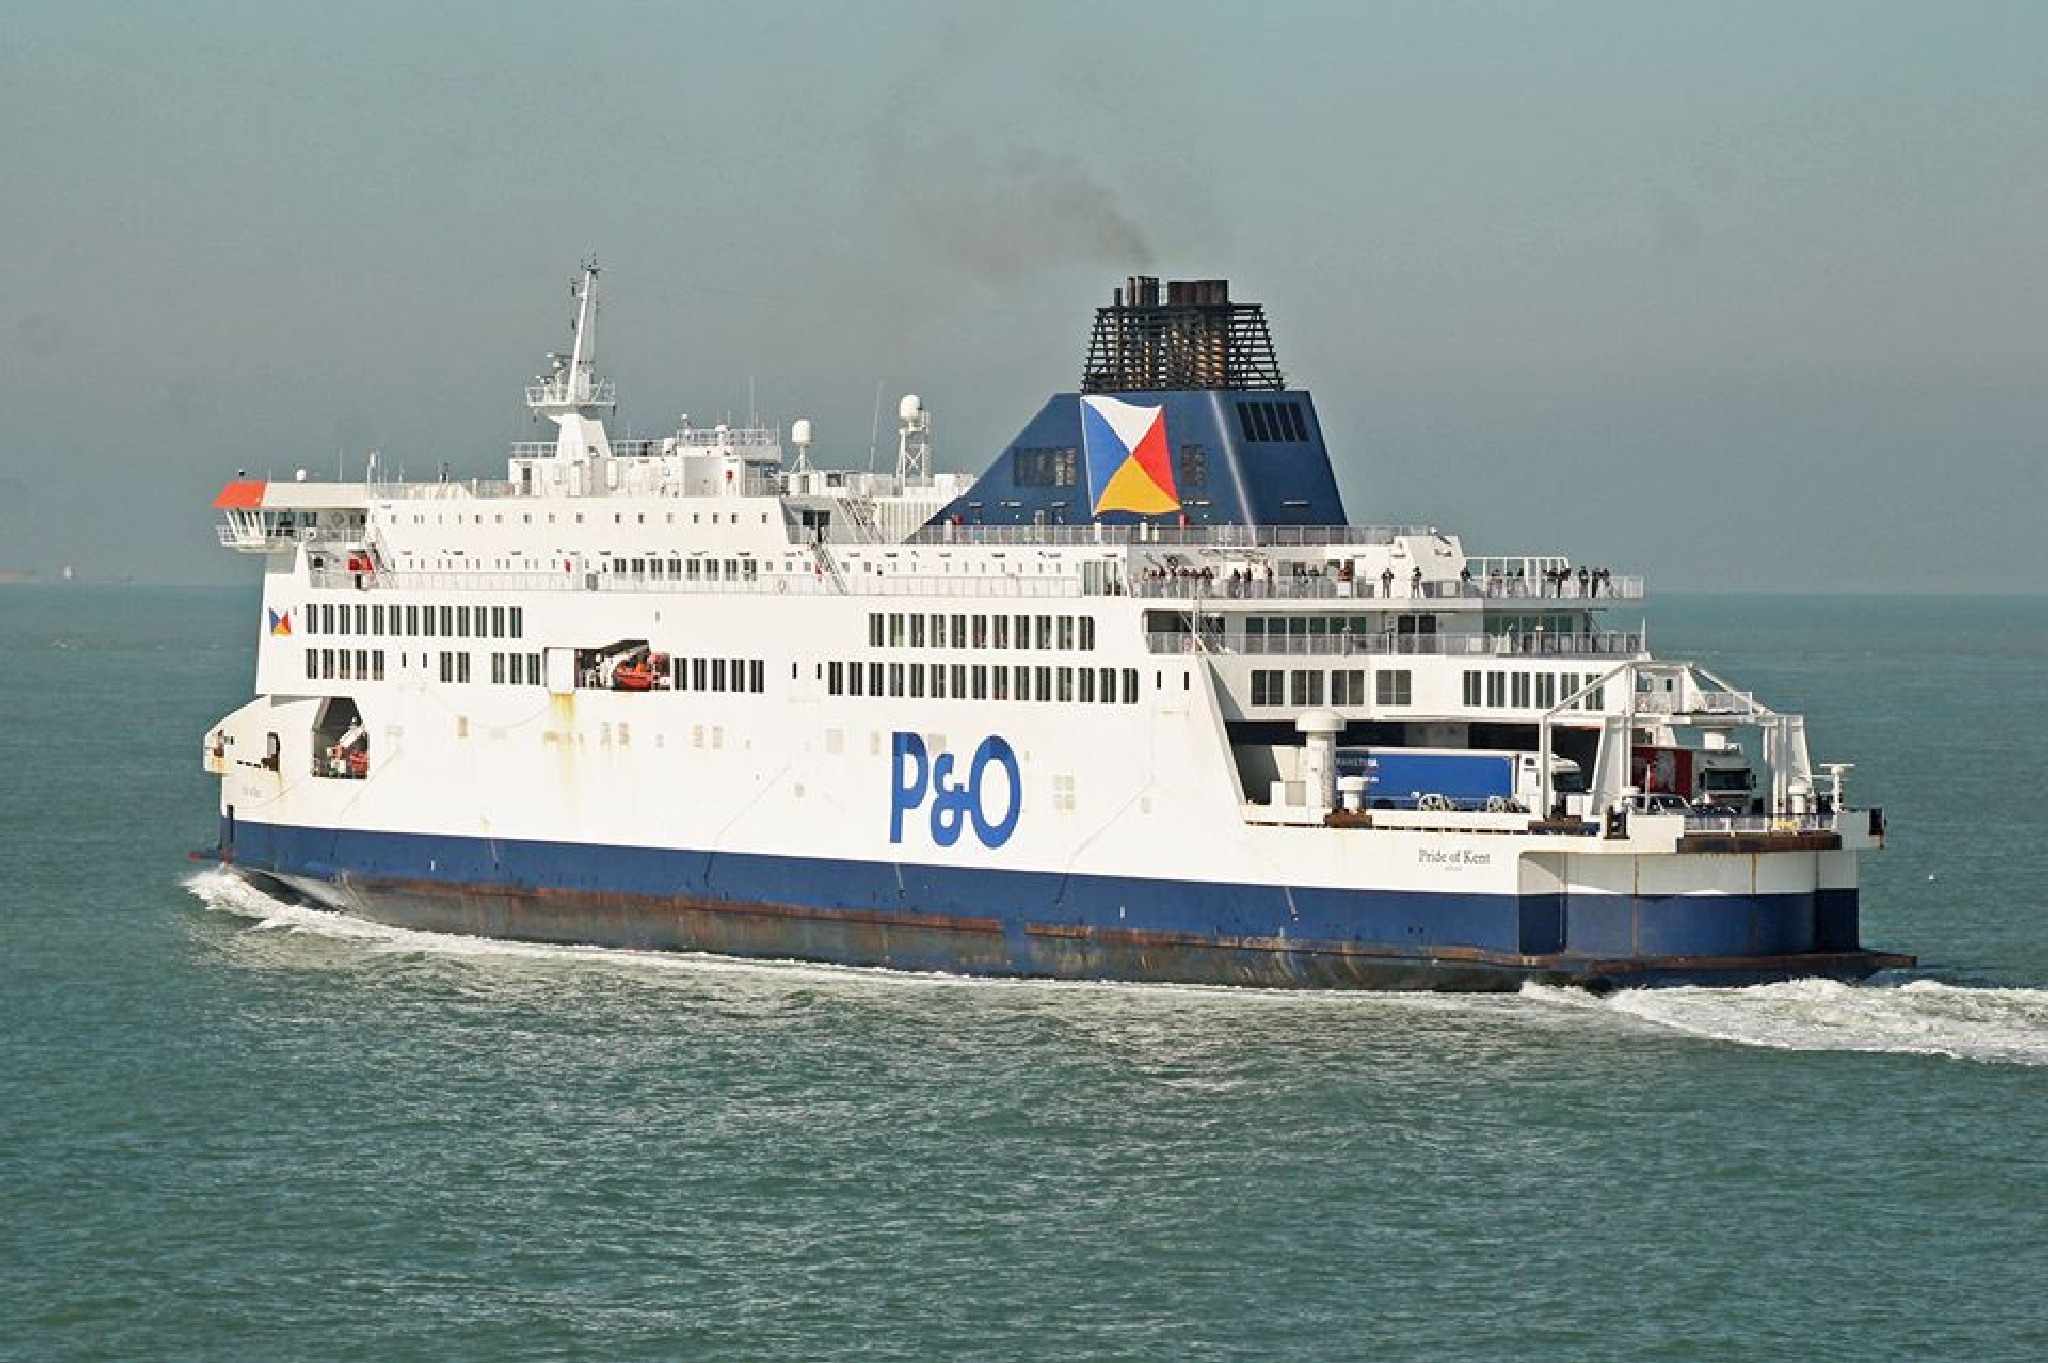 PRIDE OF KENT DEPARTS CALAIS by mikewoodland21